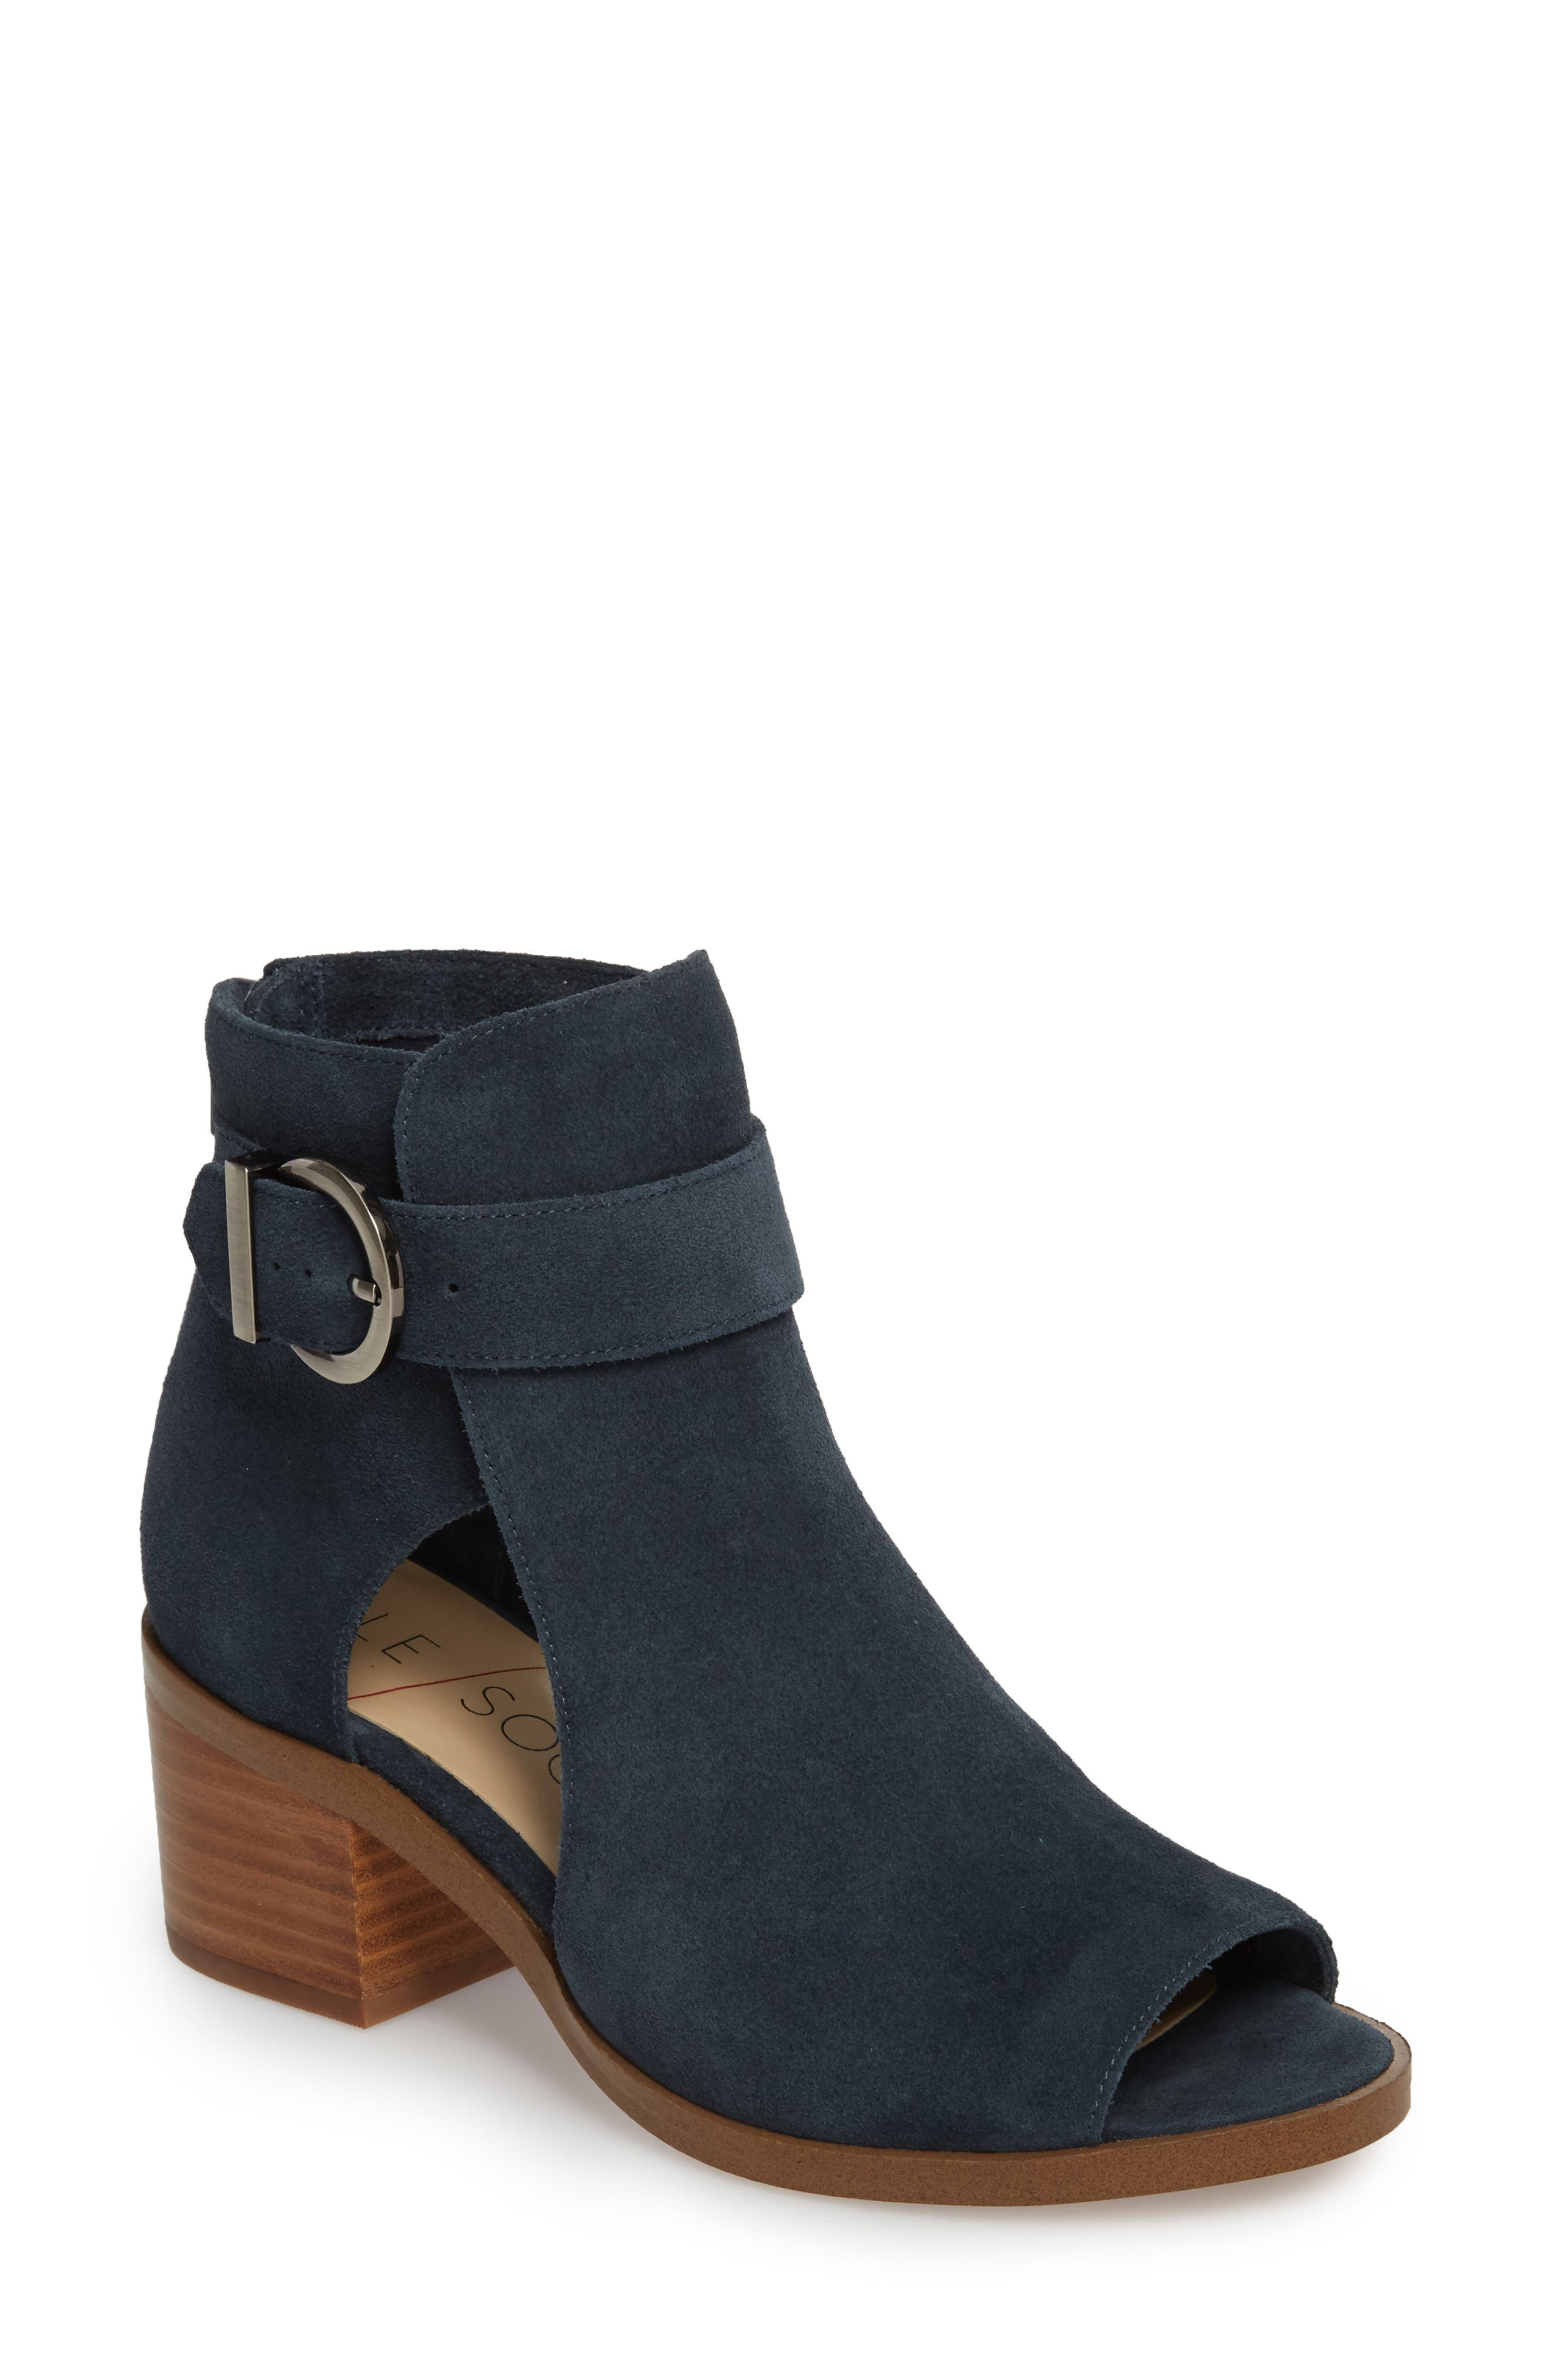 Sole Society Tracy Block Heel Sandal (Women)